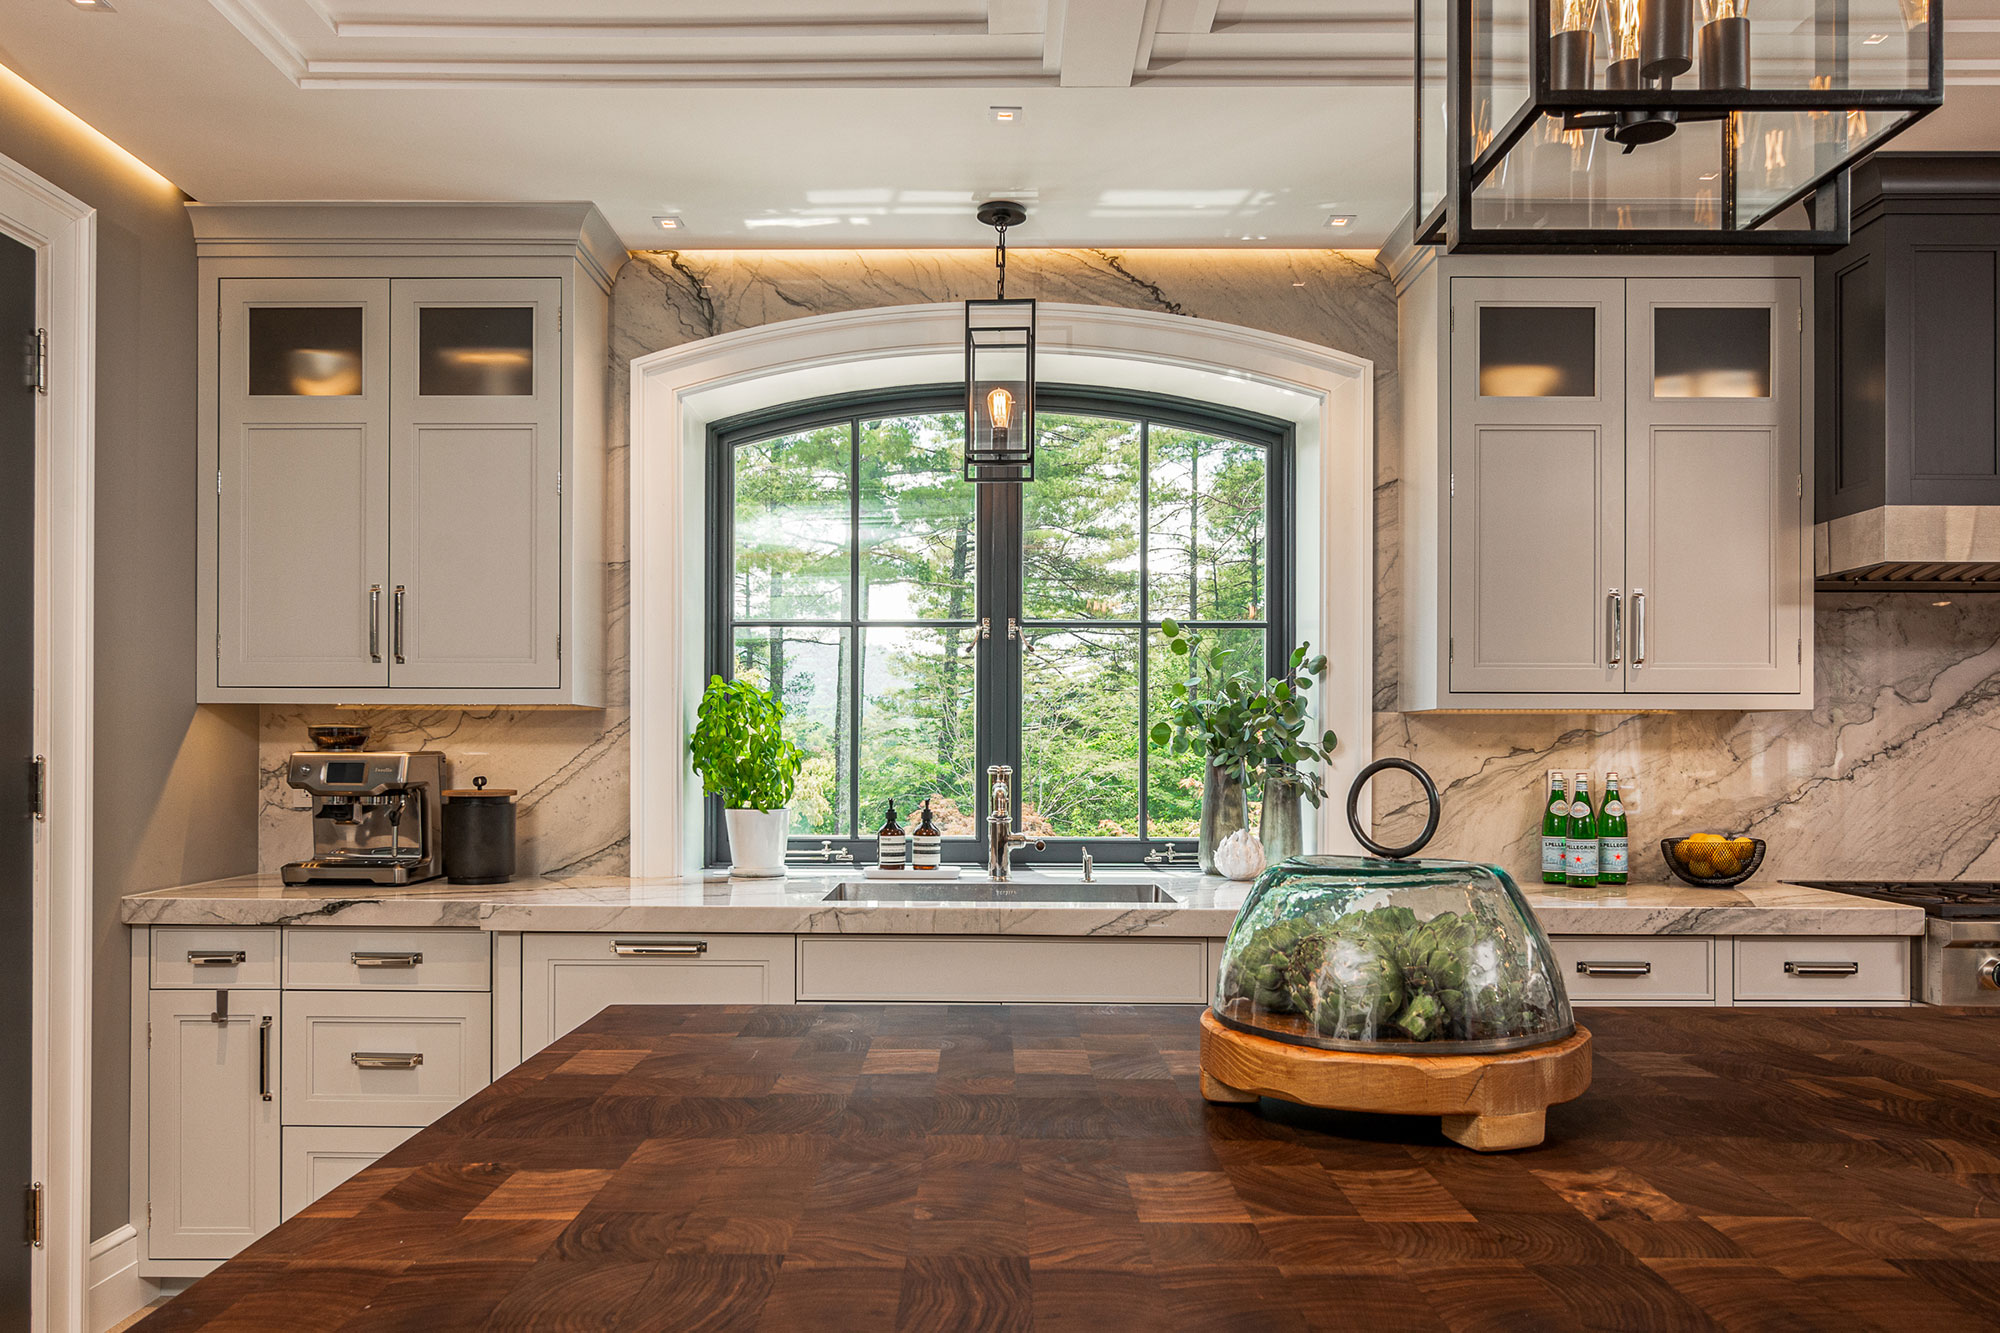 Governor's Mansion Kitchen Remodel by Stratton Design Group